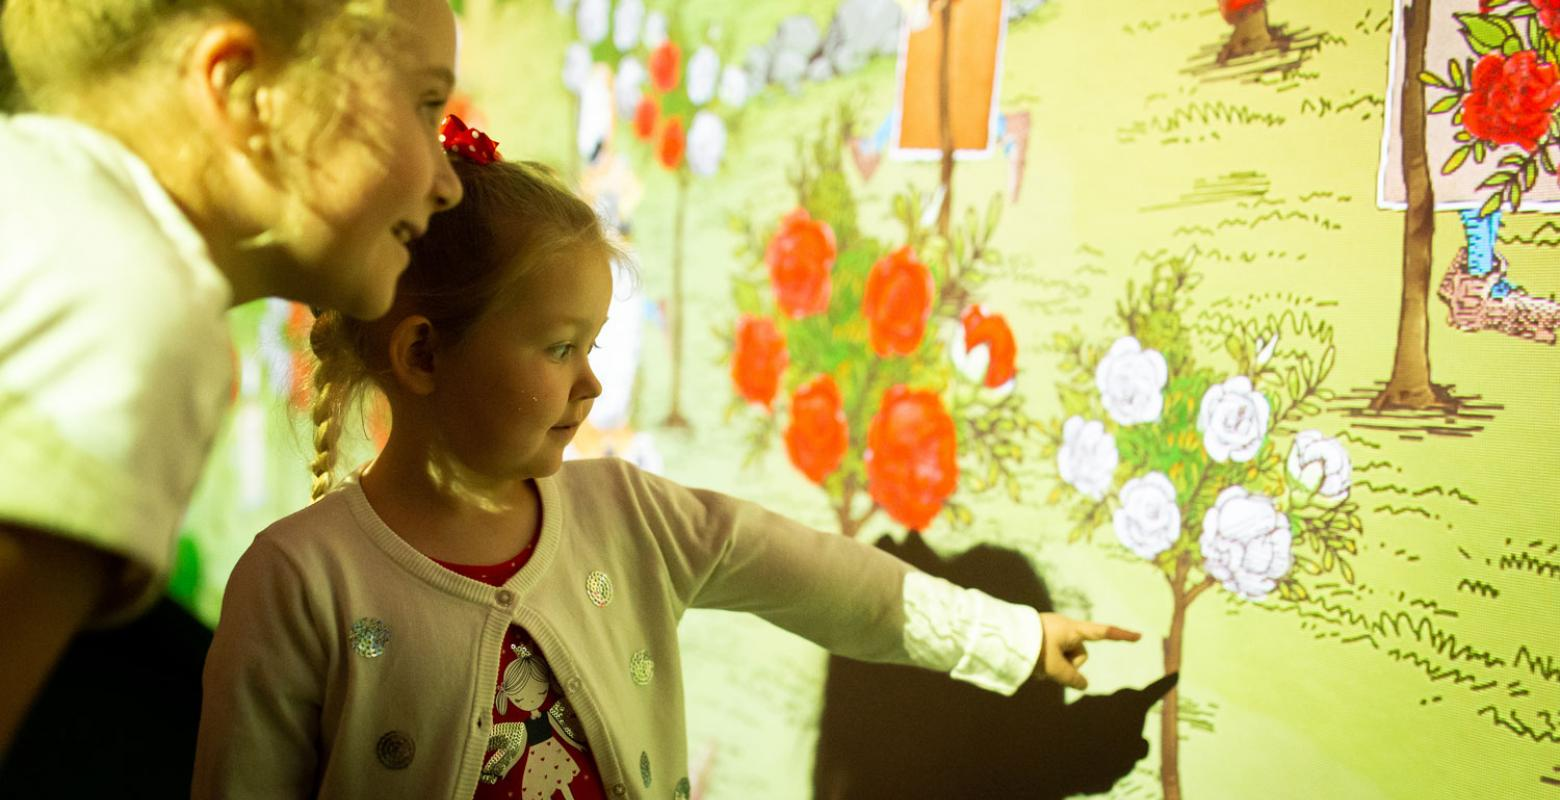 Children look at digital projections or red and white rose bushes